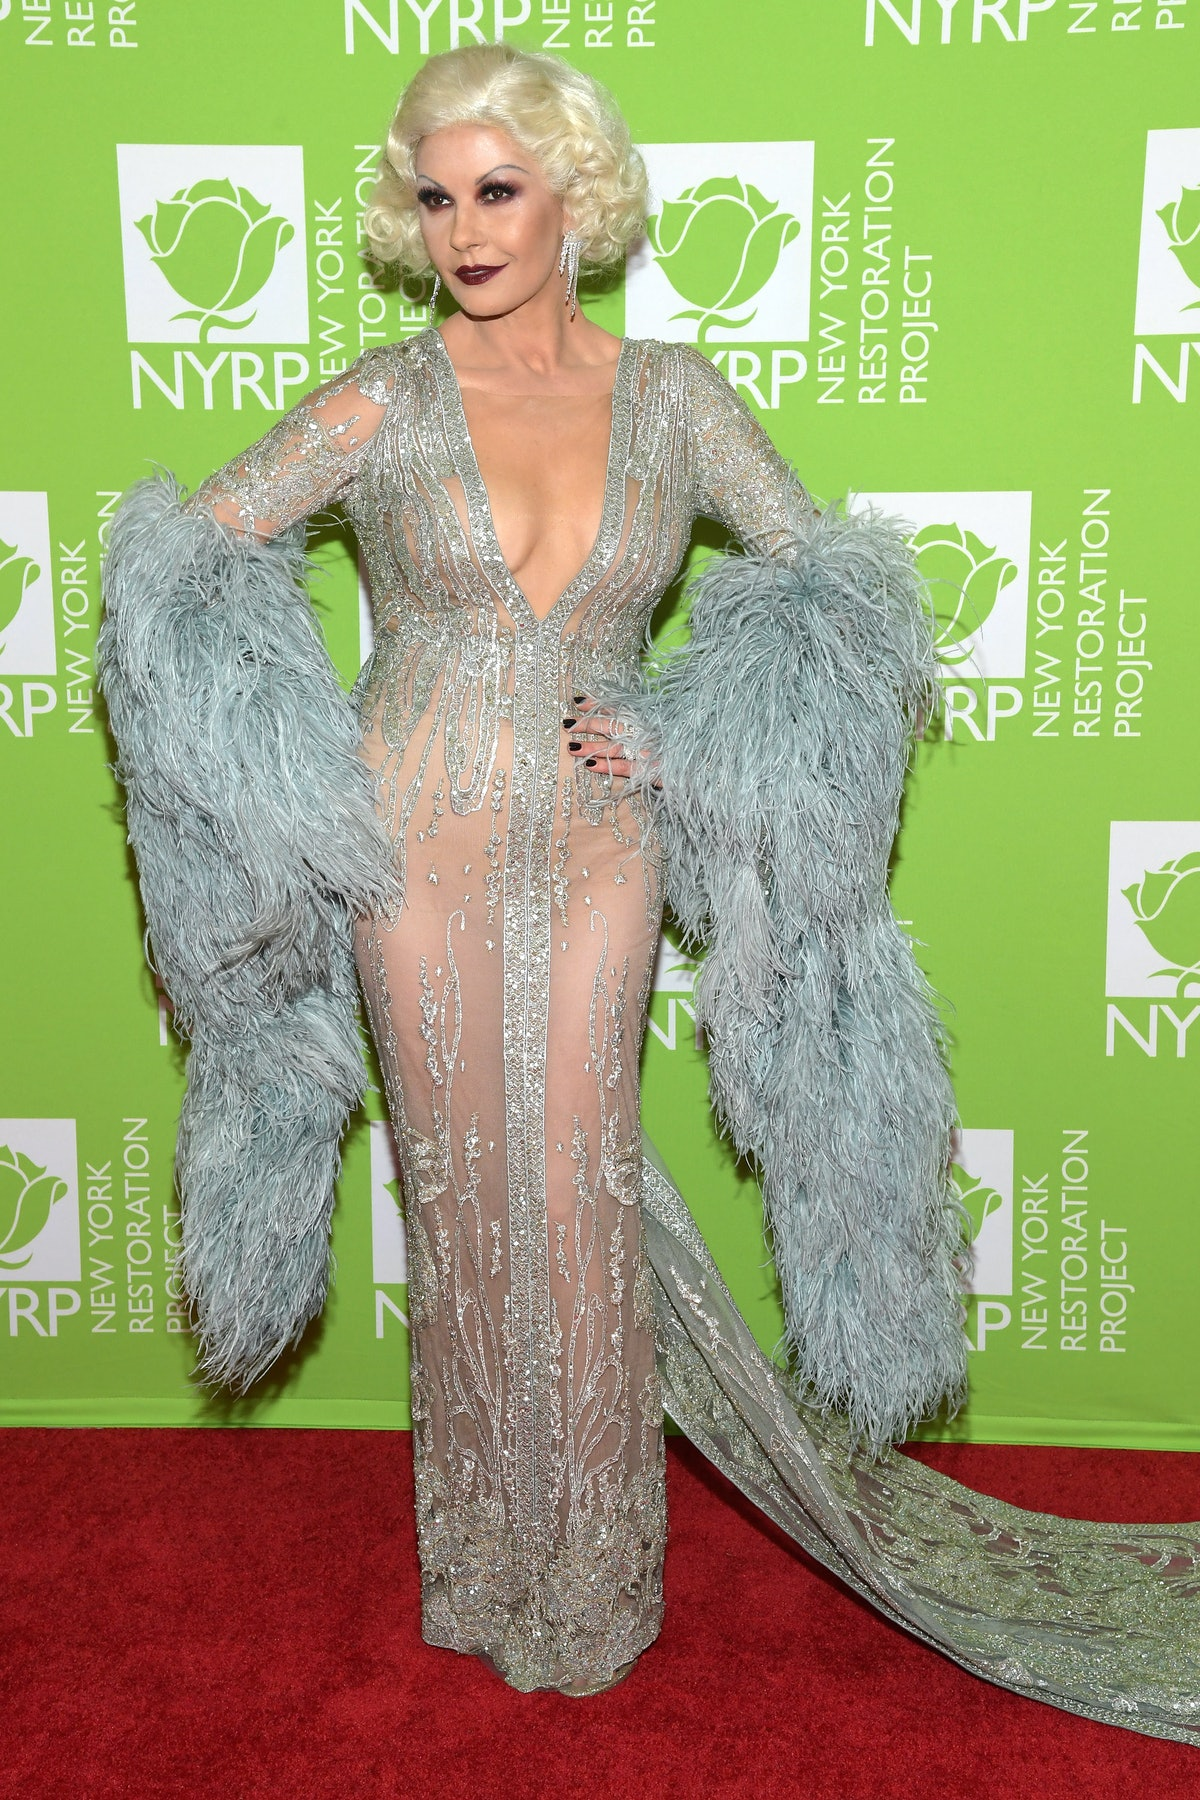 Bette Midler's Hulaween To Benefit NY Restoration Project